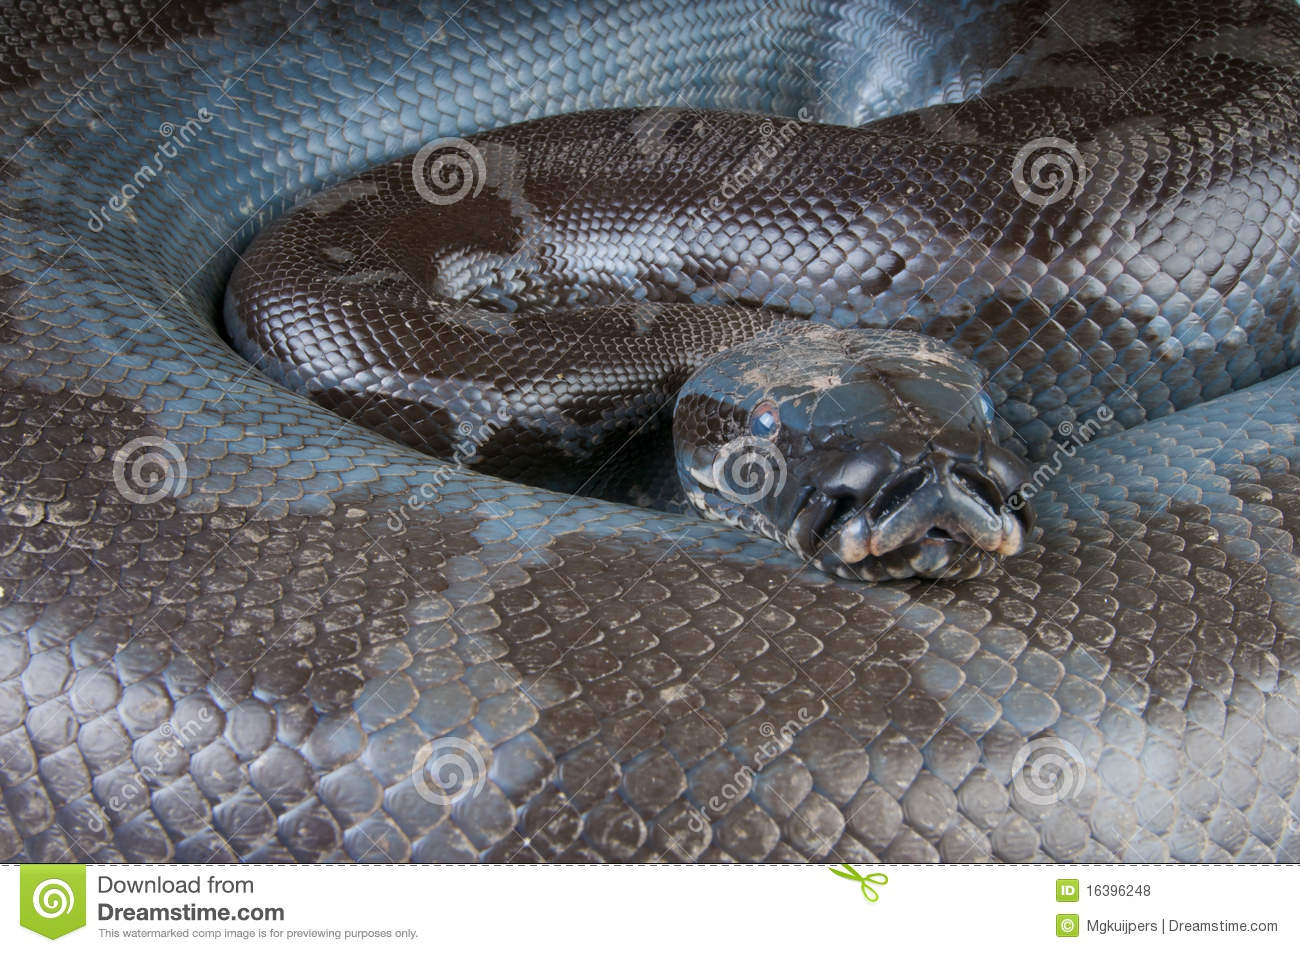 Black blood python stock photo  Image of snake, leather